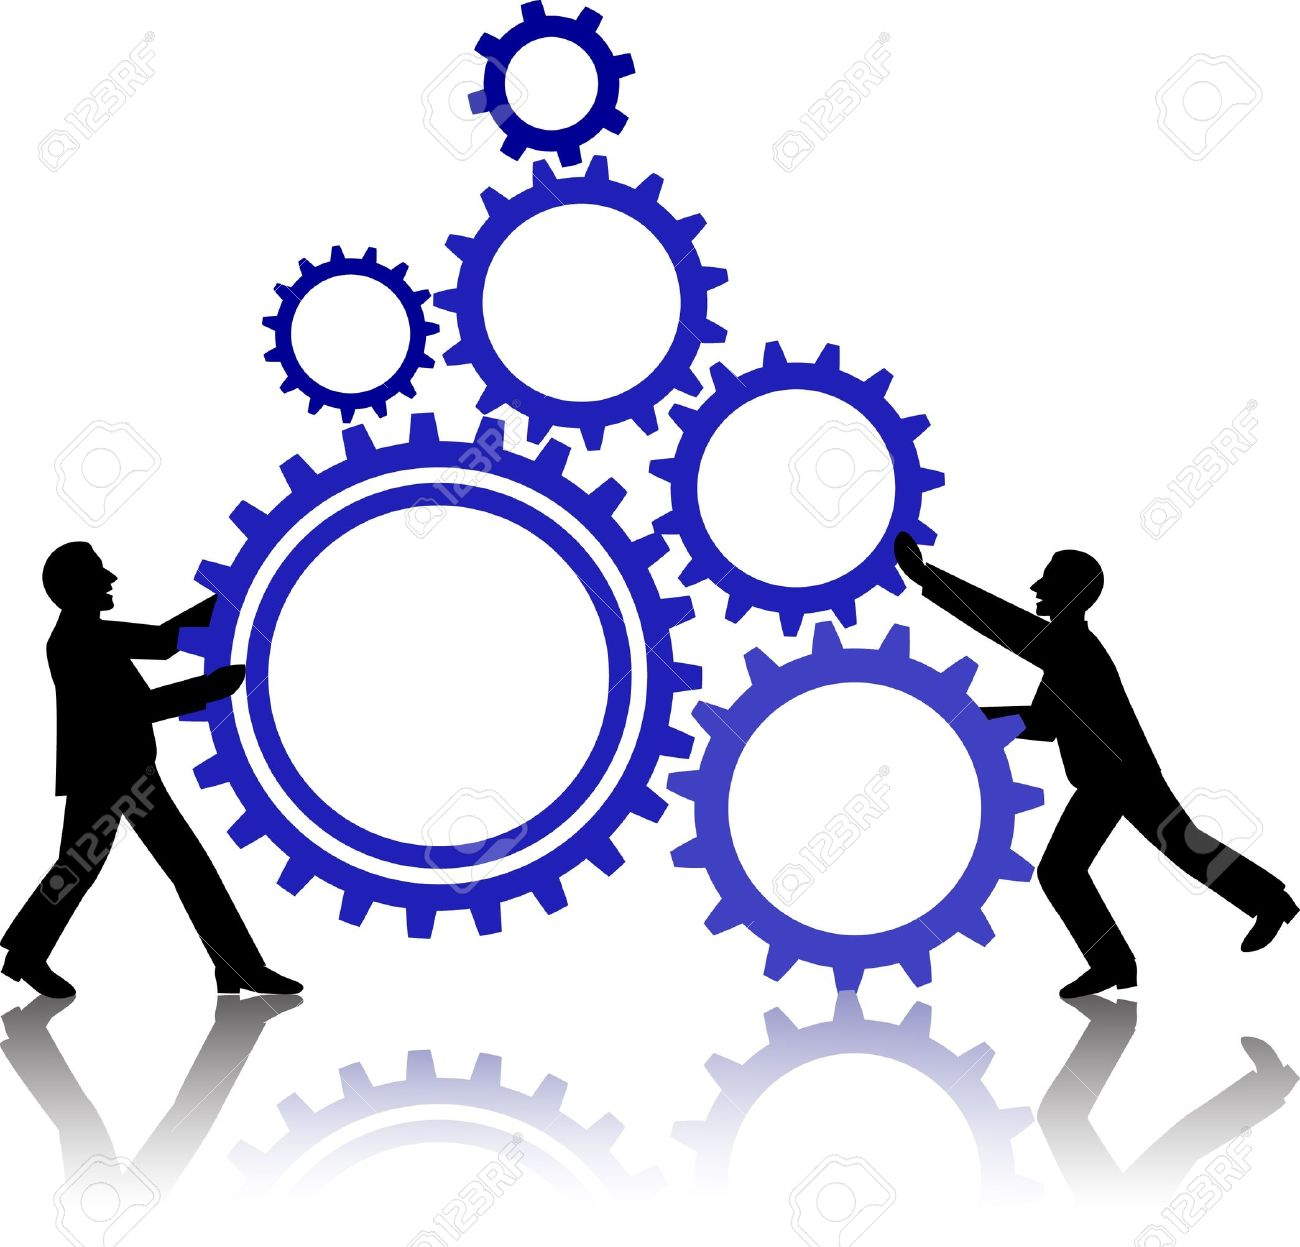 1300x1247 Illustration Of Business People Working Together Royalty Free